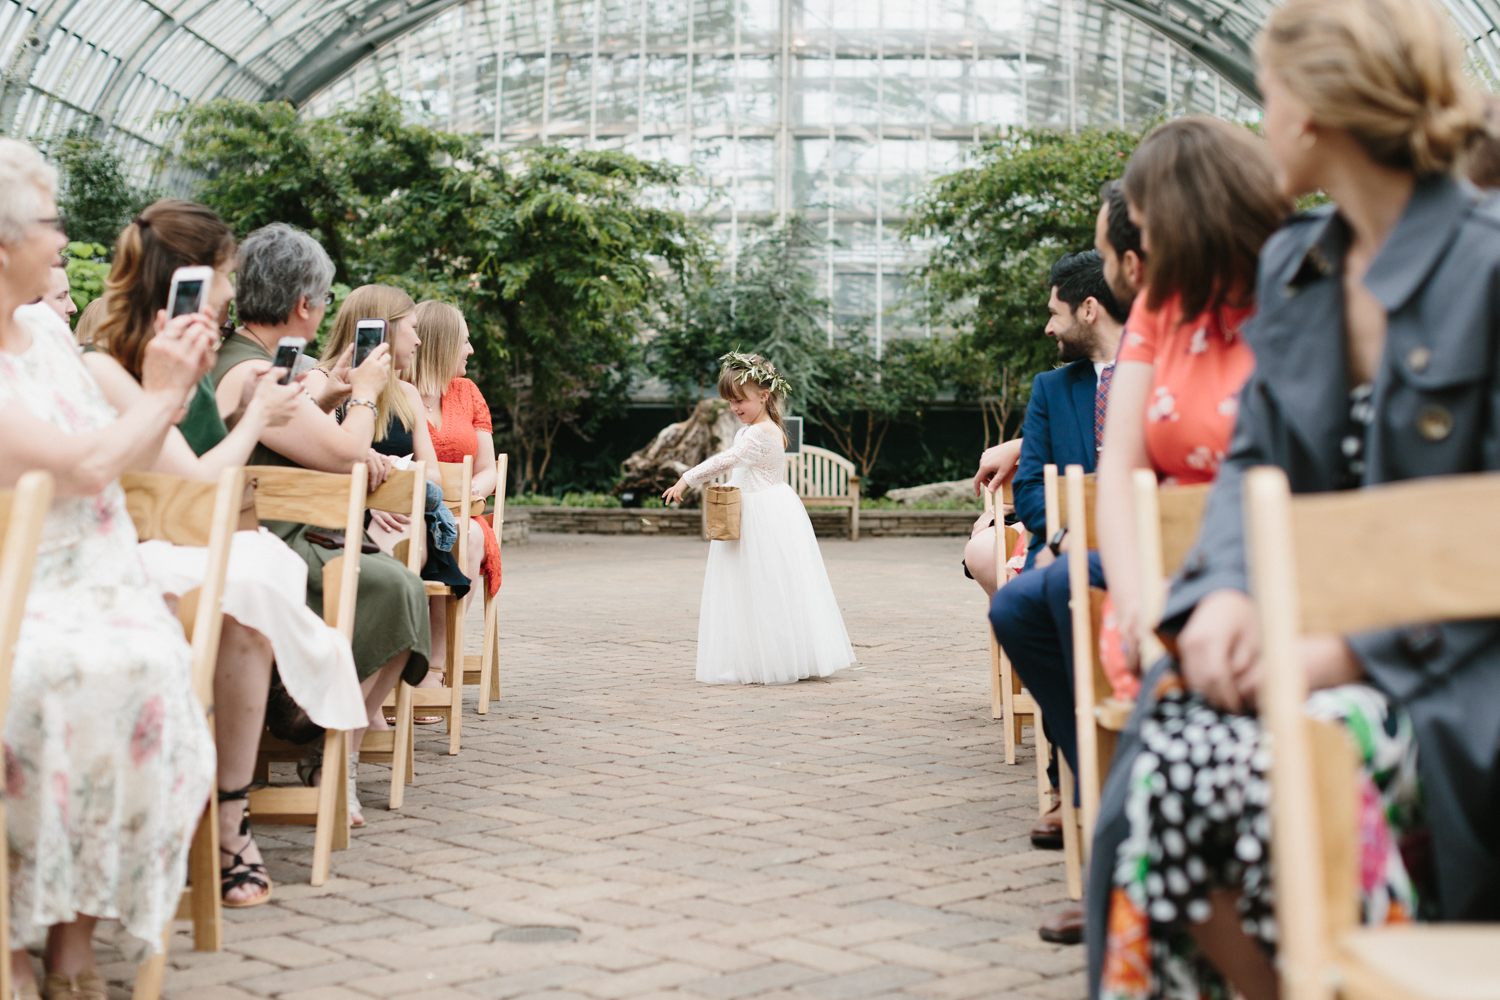 Chicago Garfield Park Conservatory Wedding by Northern Michigan Photographer Mae Stier-056.jpg